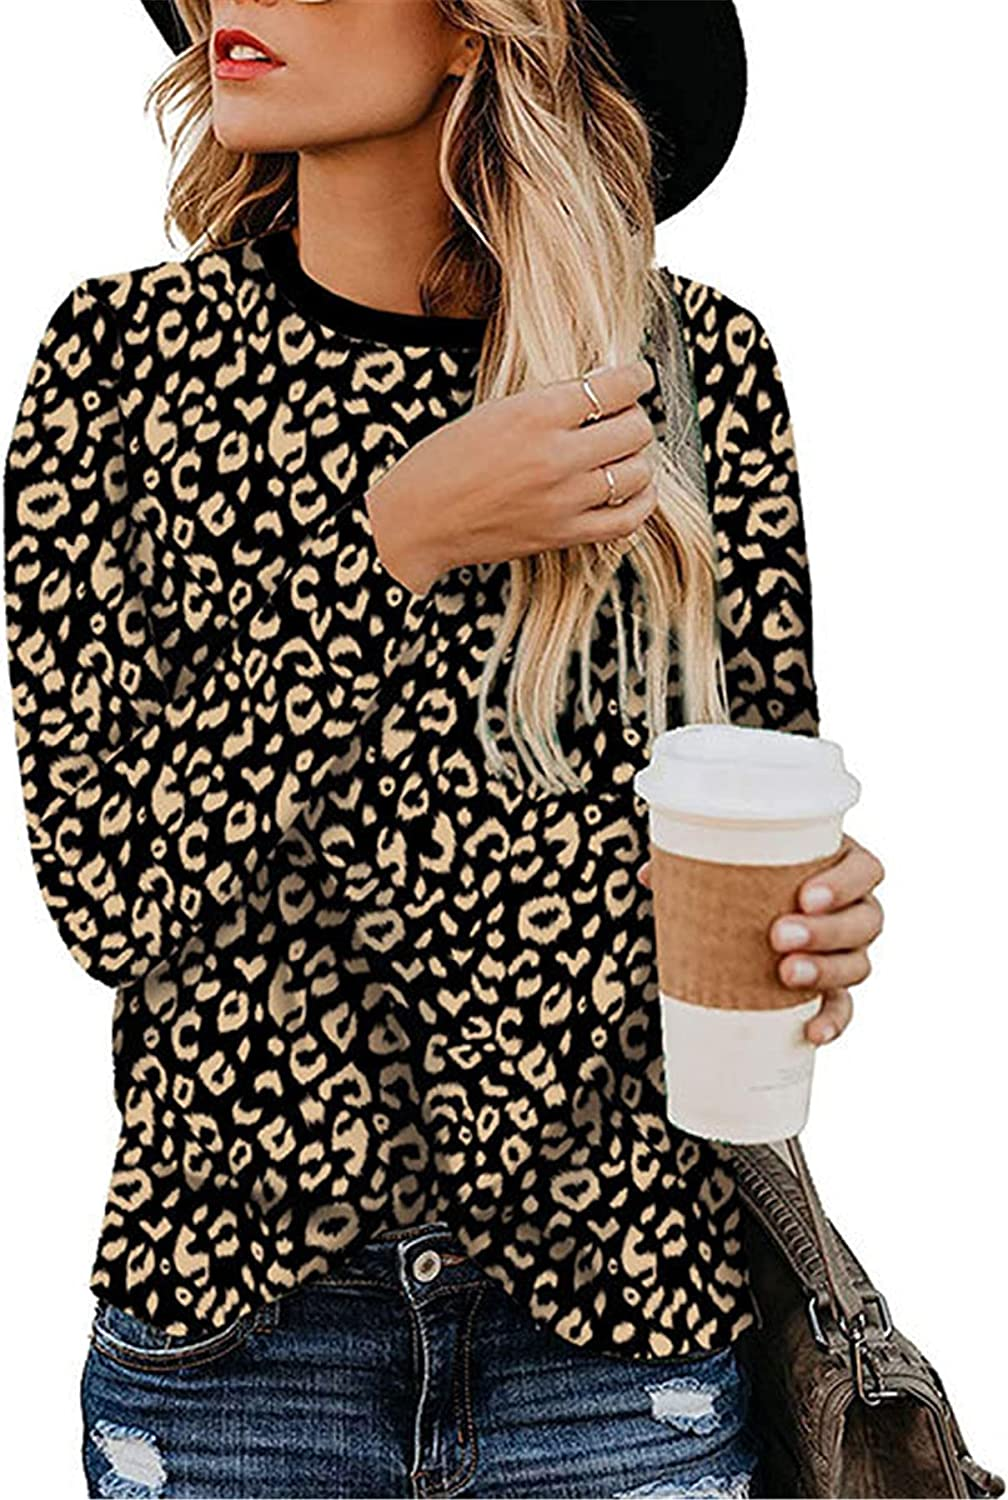 Andongnywell Women's Large Size Casual Tops Leopard Printed T-Shirt Basic Long Sleeve Comfy Blouse Tunics